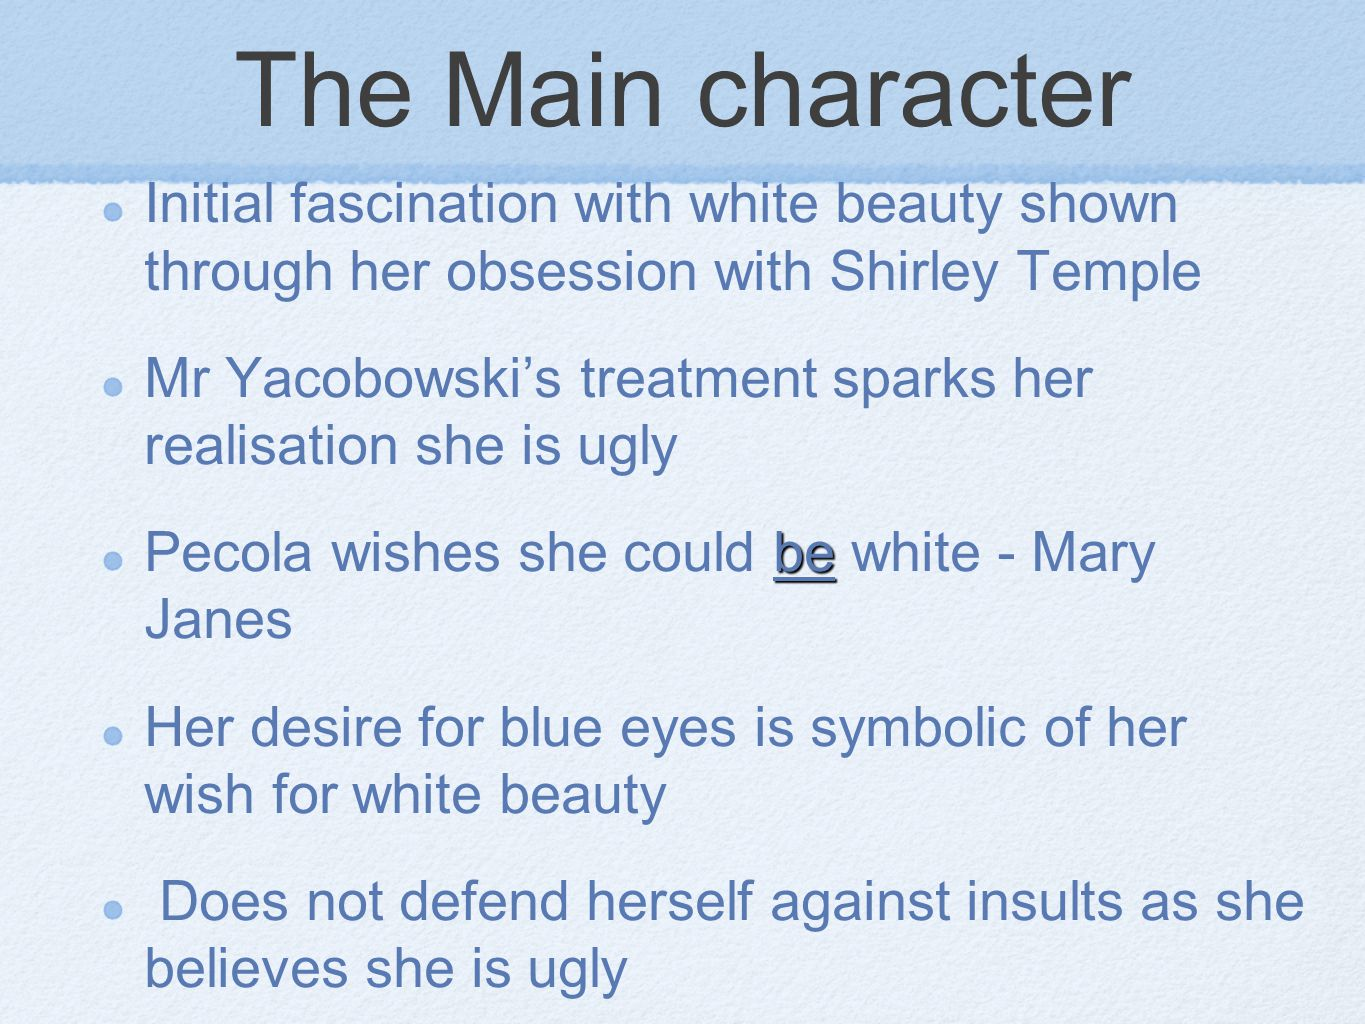 The Main character Initial fascination with white beauty shown through her obsession with Shirley Temple.